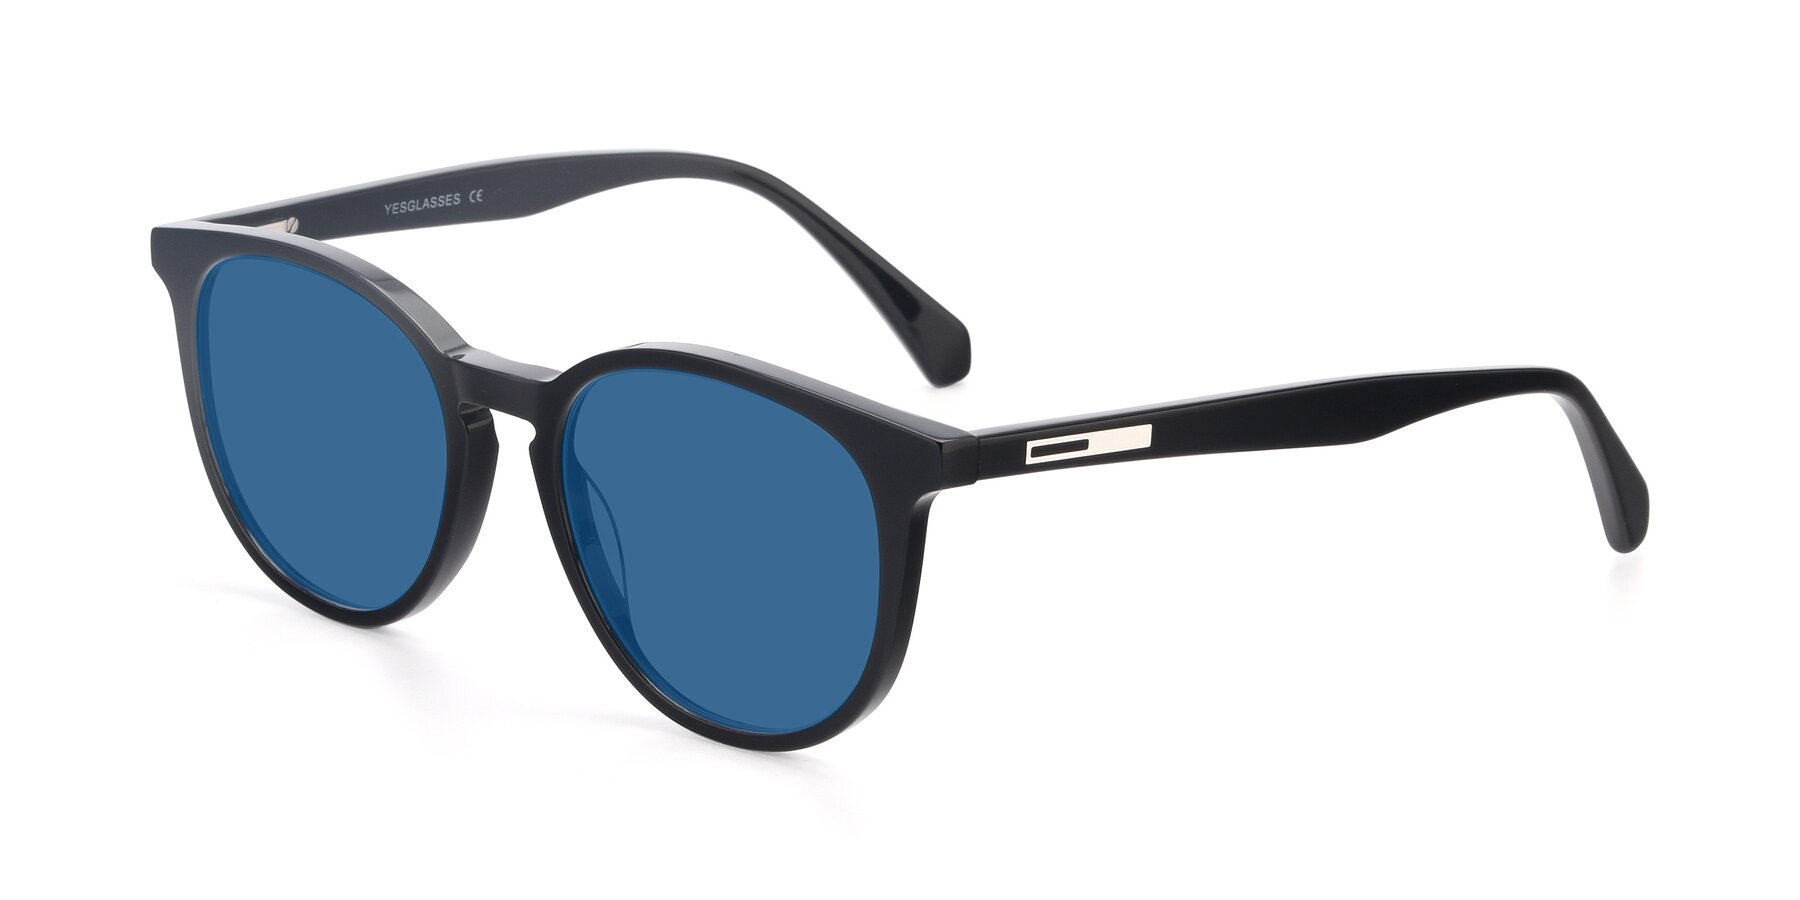 Angle of 17721 in Black with Blue Tinted Lenses